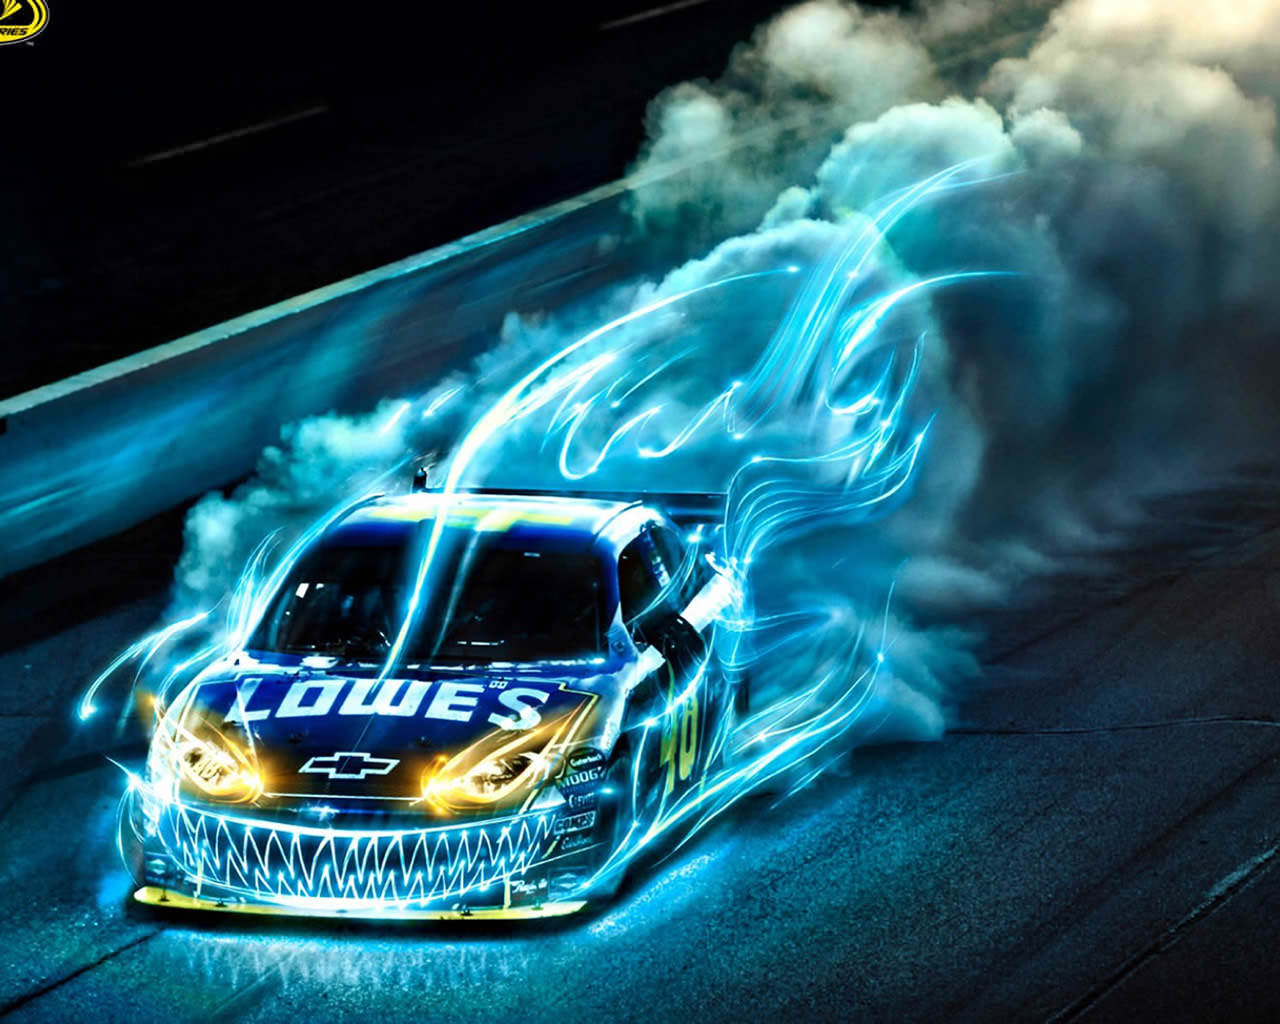 amazing-drag-racing-wallpaper-1280x1024-1007169.jpg